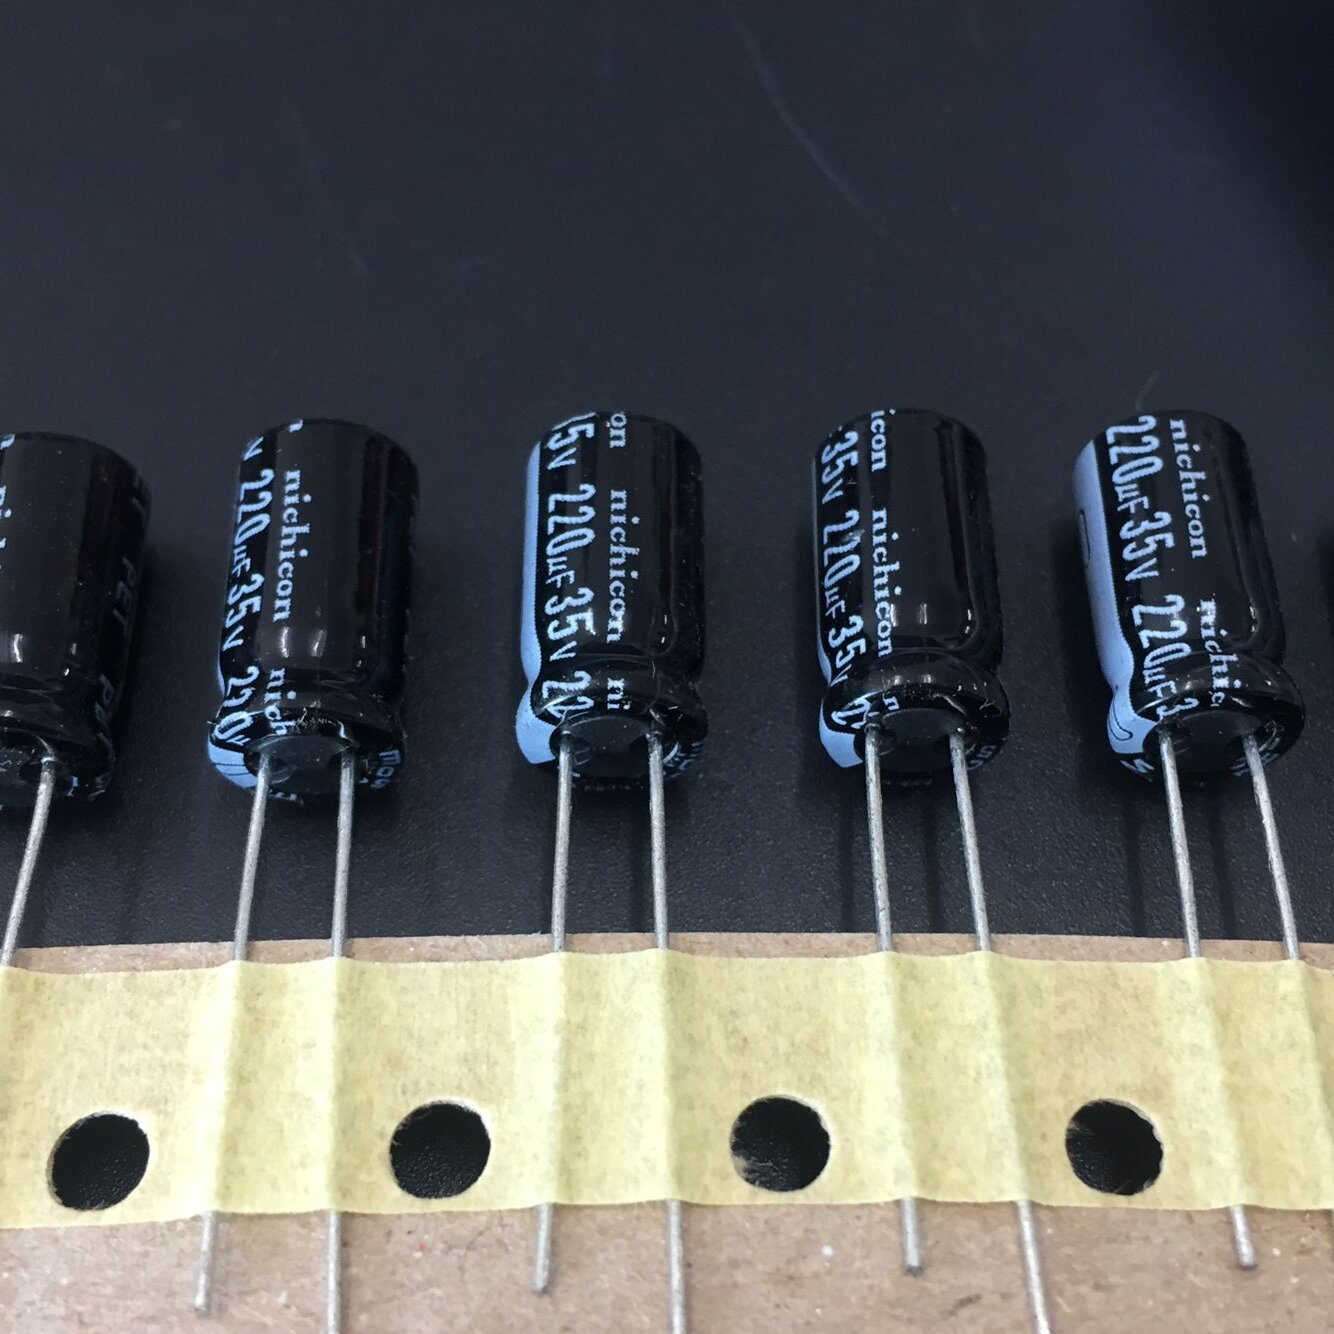 10pcs 220uF 35V NICHICON HE Series 8x15mm Extremely Low Impdance 35V220uF Aluminum Electrolytic Capacitor